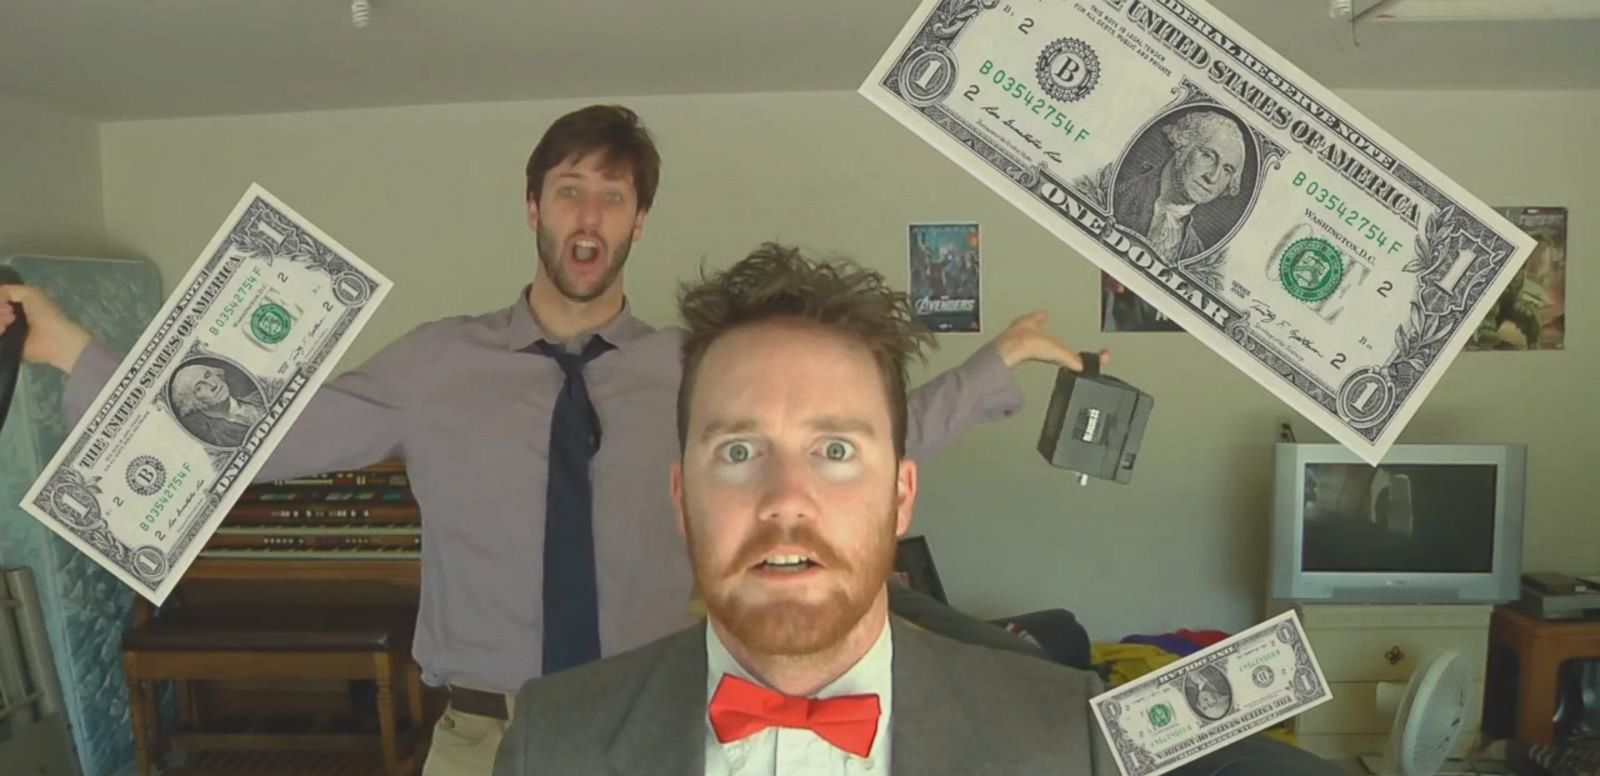 VIDEO: Guys Made Epicly Cheesy $1 Garage Sale Commercial